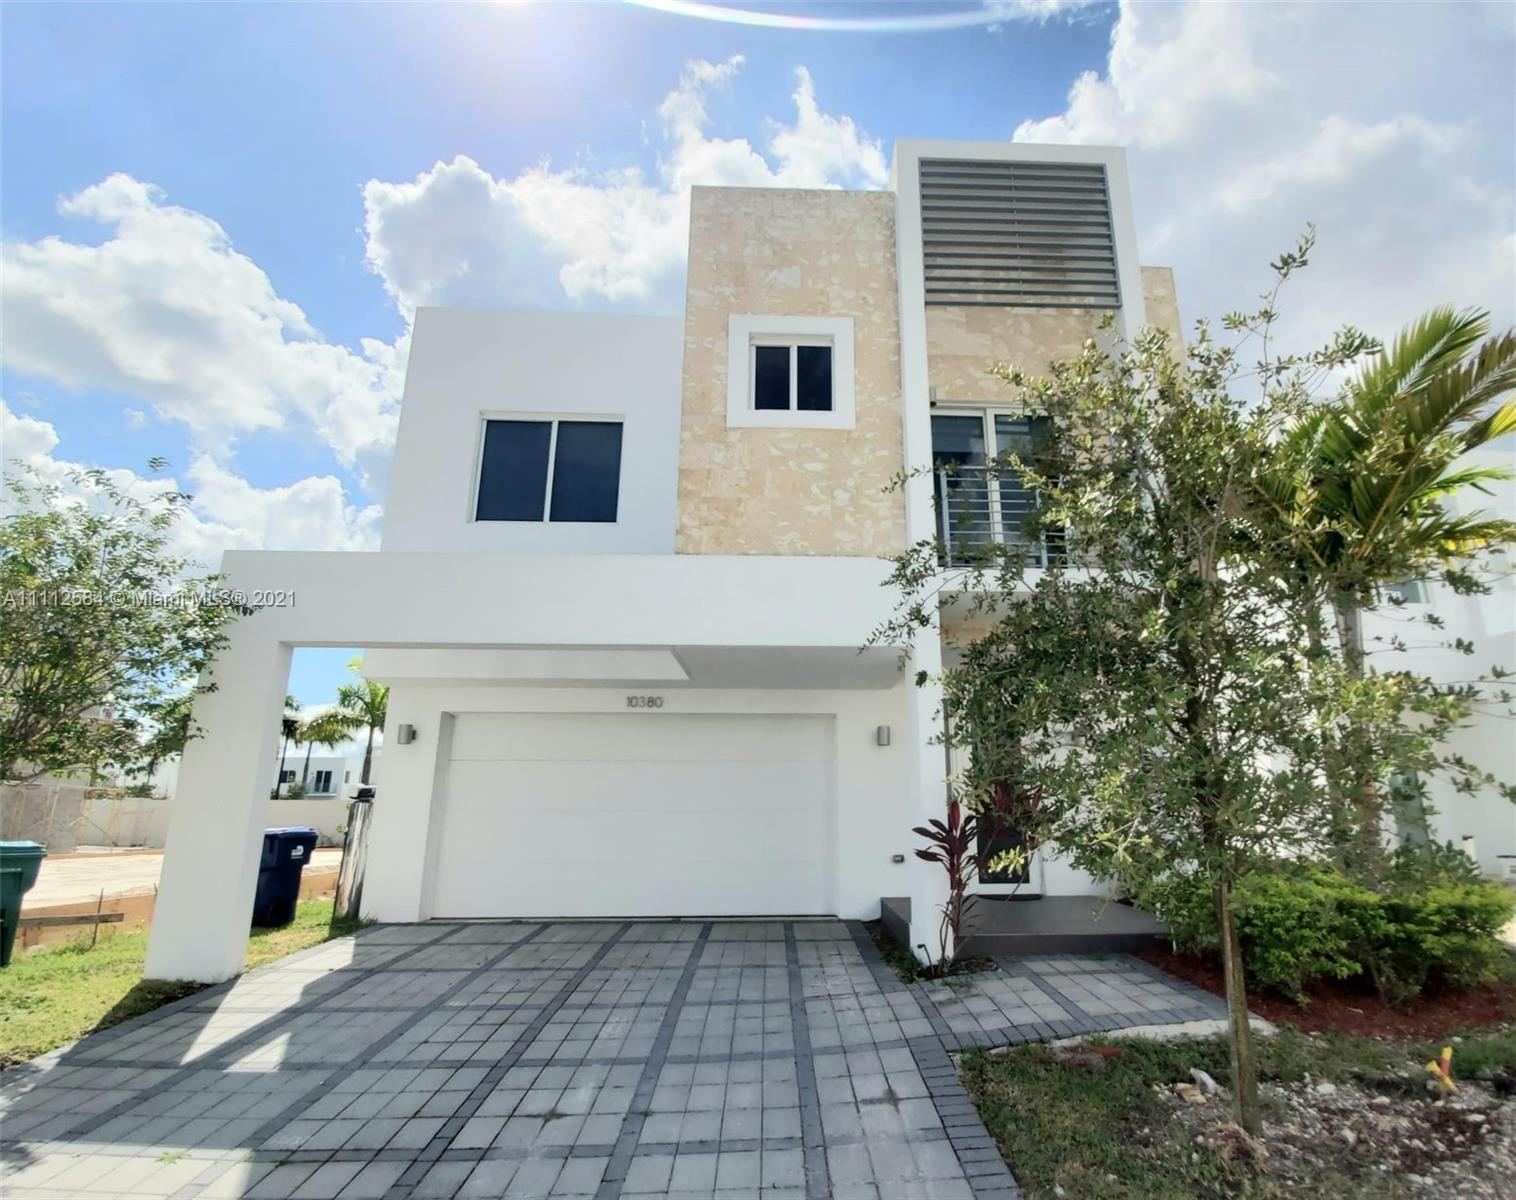 Single Family Home,For Rent,10380 NW 68th Ter #., Doral, Florida 33178,Brickell,realty,broker,condos near me